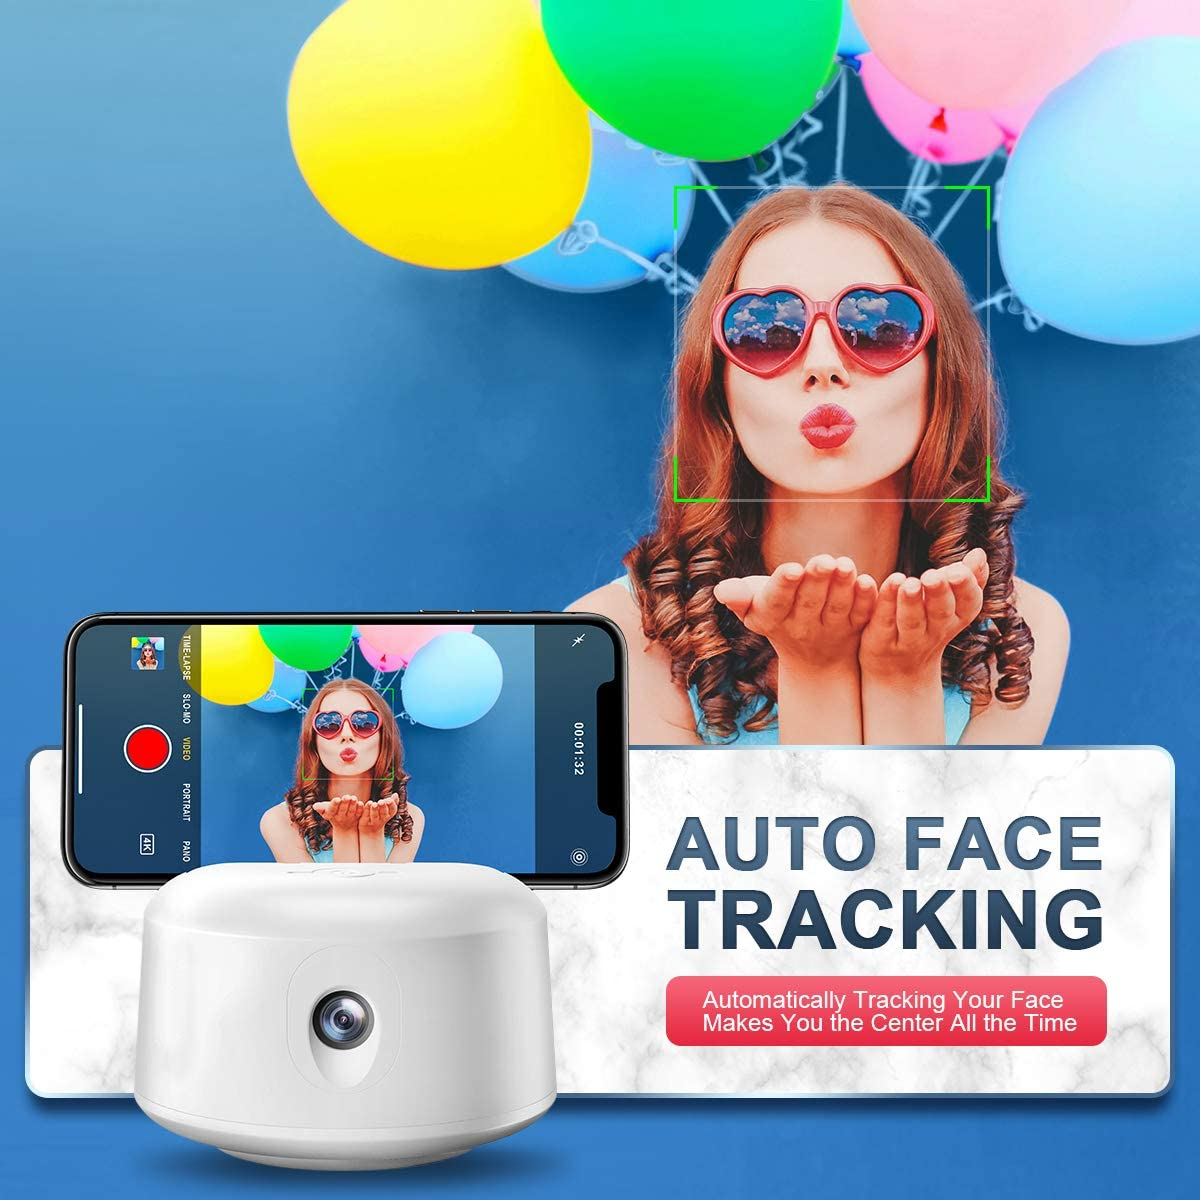 Smart Tracking Holder, Auto-Face Tracking Selfie Stick for Tripod Stand for Live Streaming Live Video